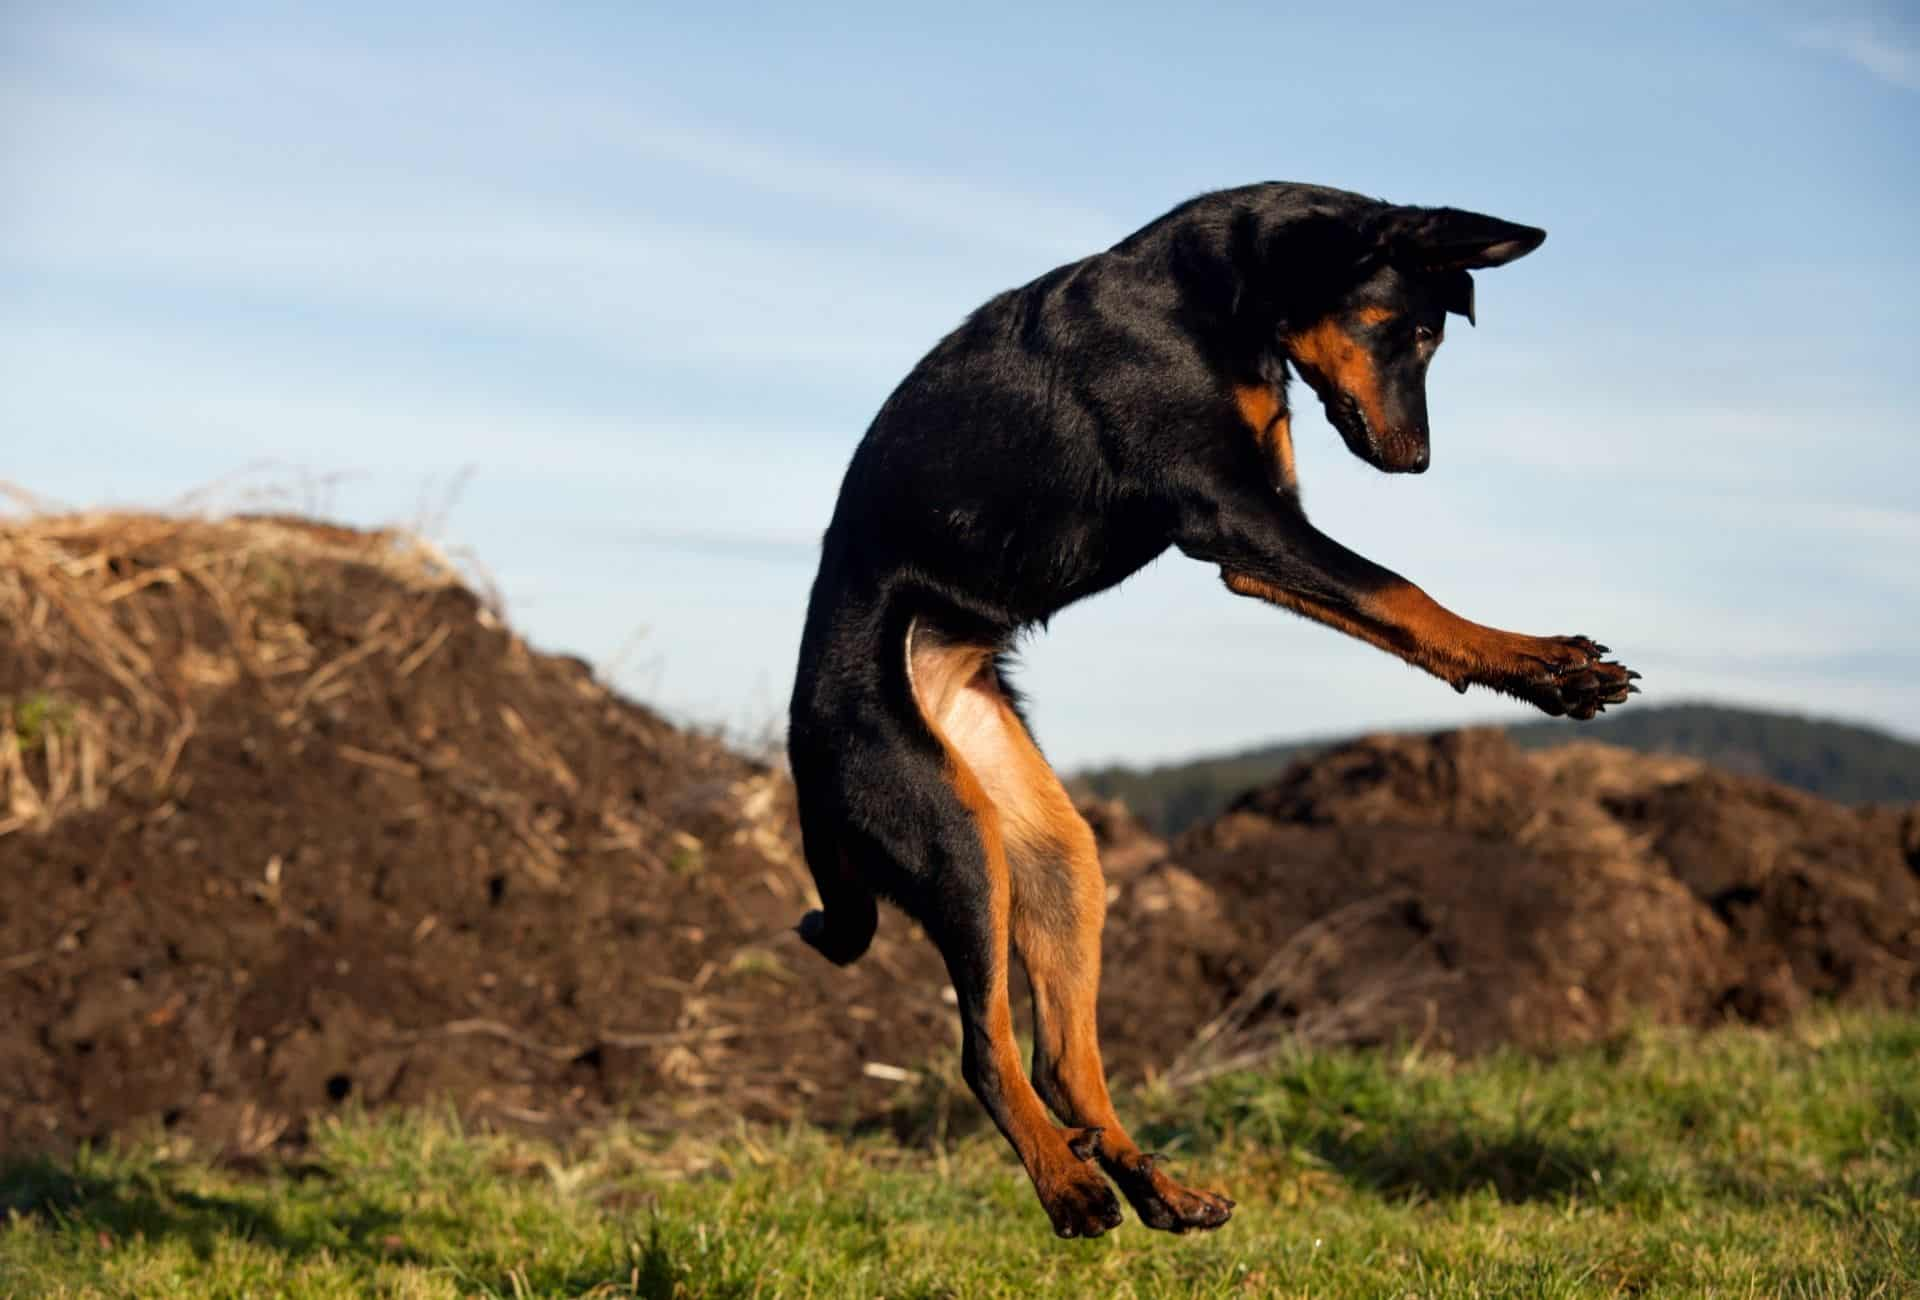 Beauceron mid-air during a jump outdoors.